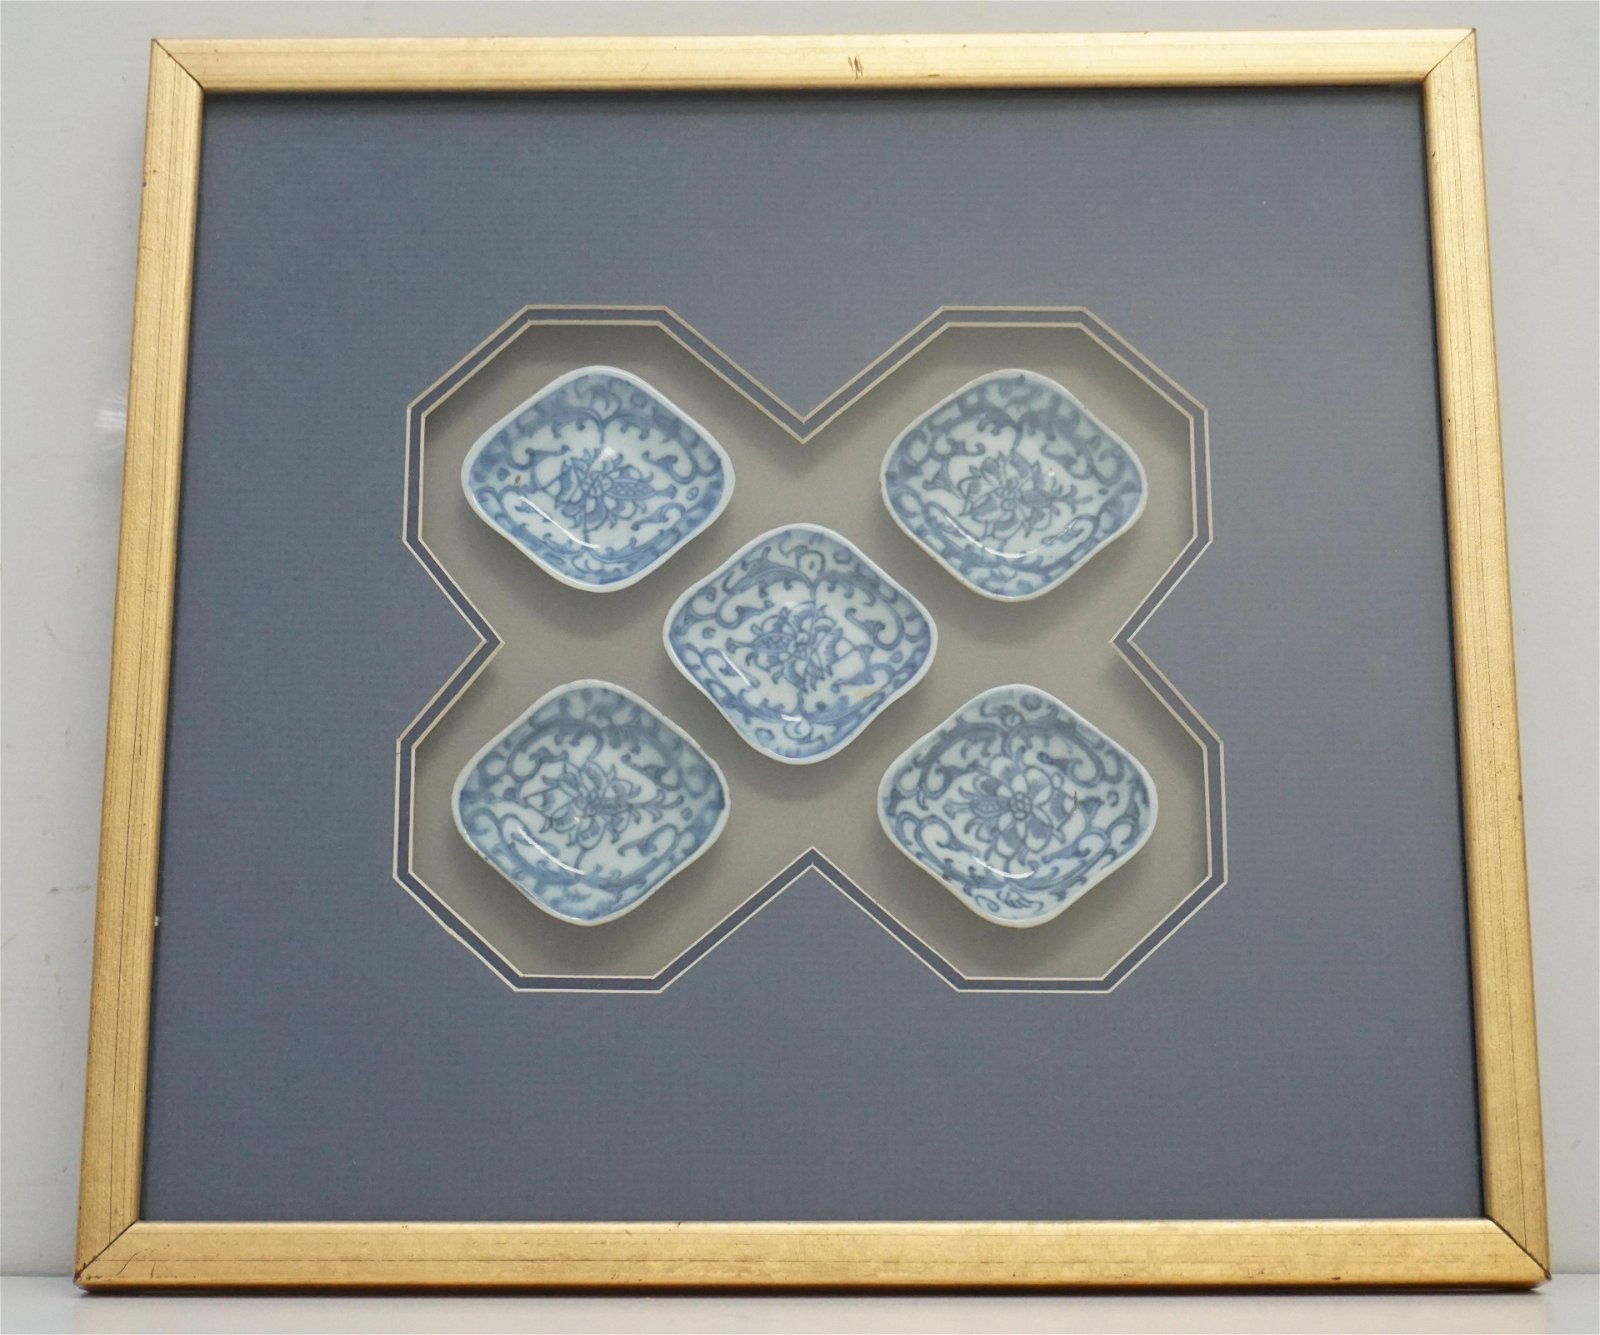 FRAMED QING DYNASTY BLUE & WHITE DISHES